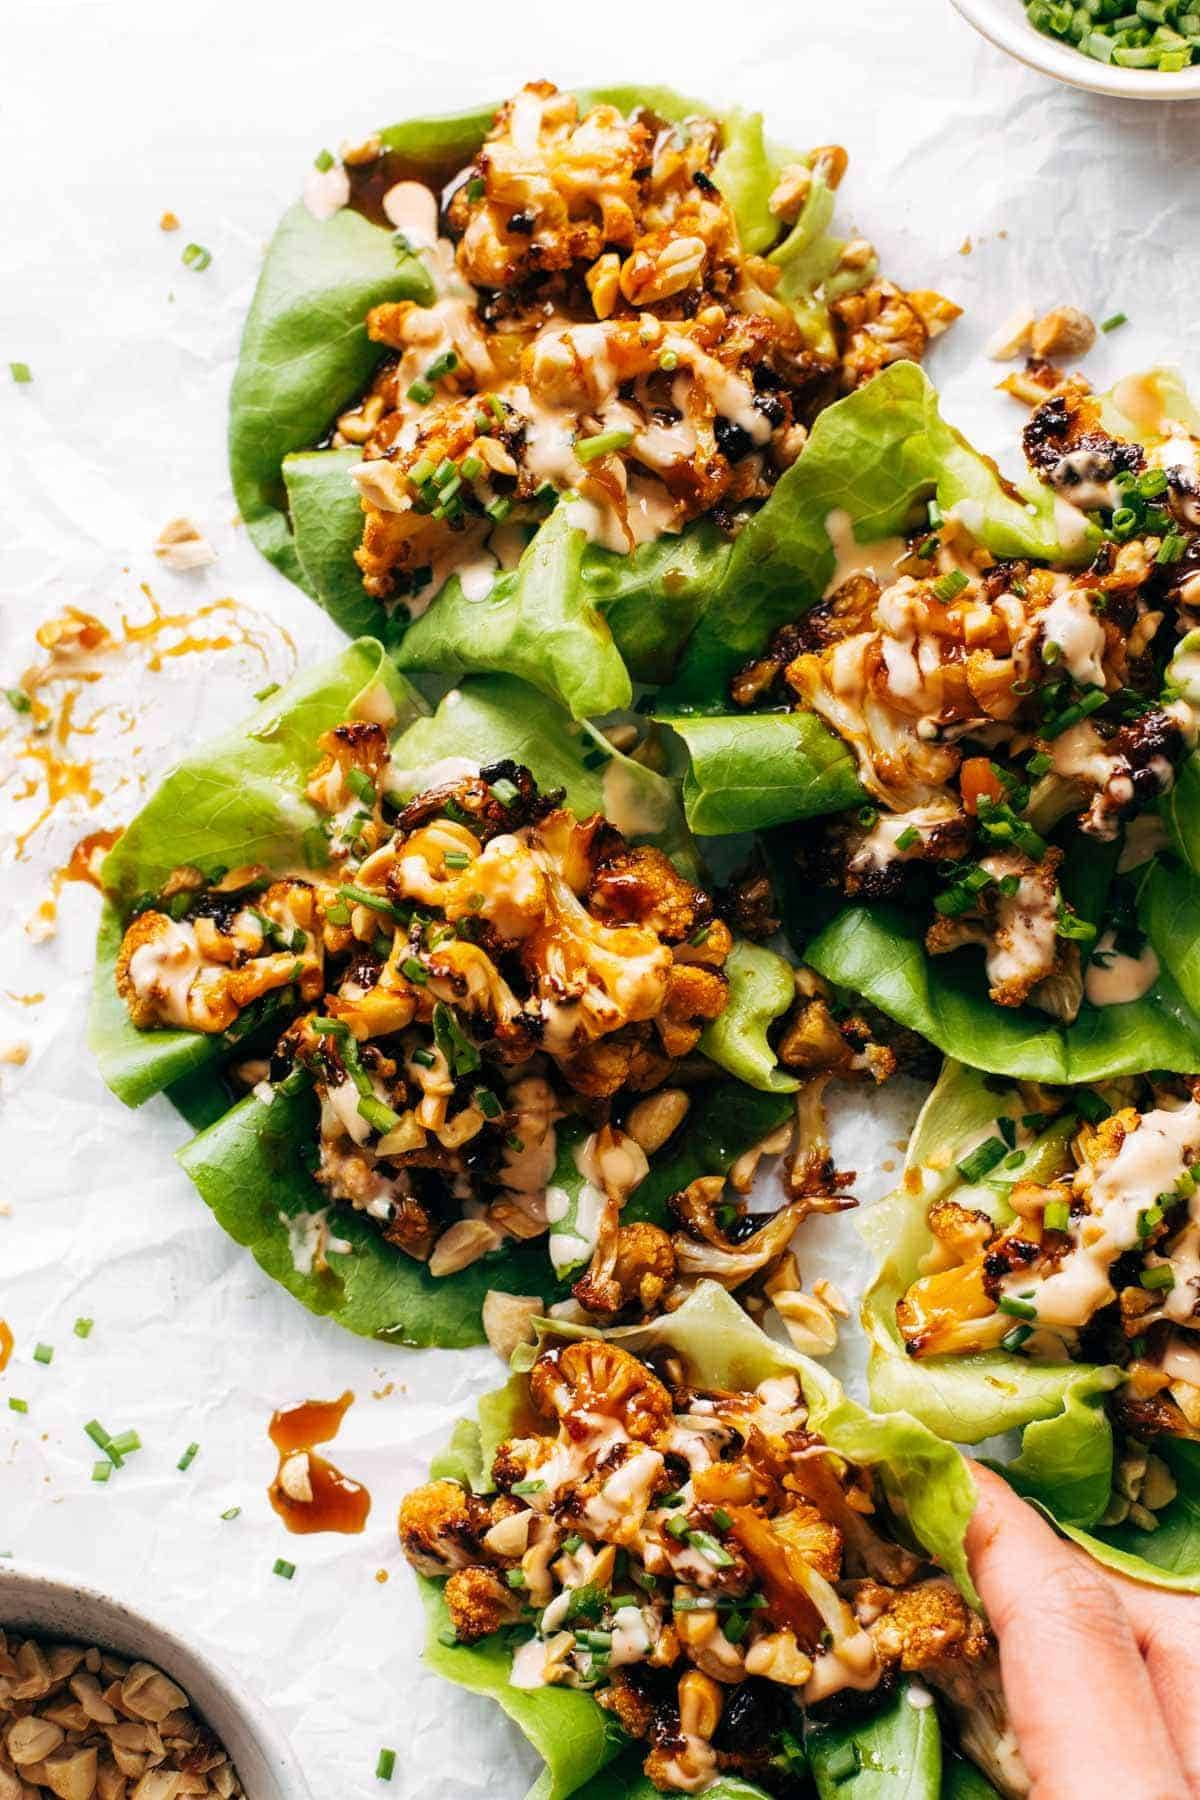 Cauliflower lettuce wraps with spicy mayo.